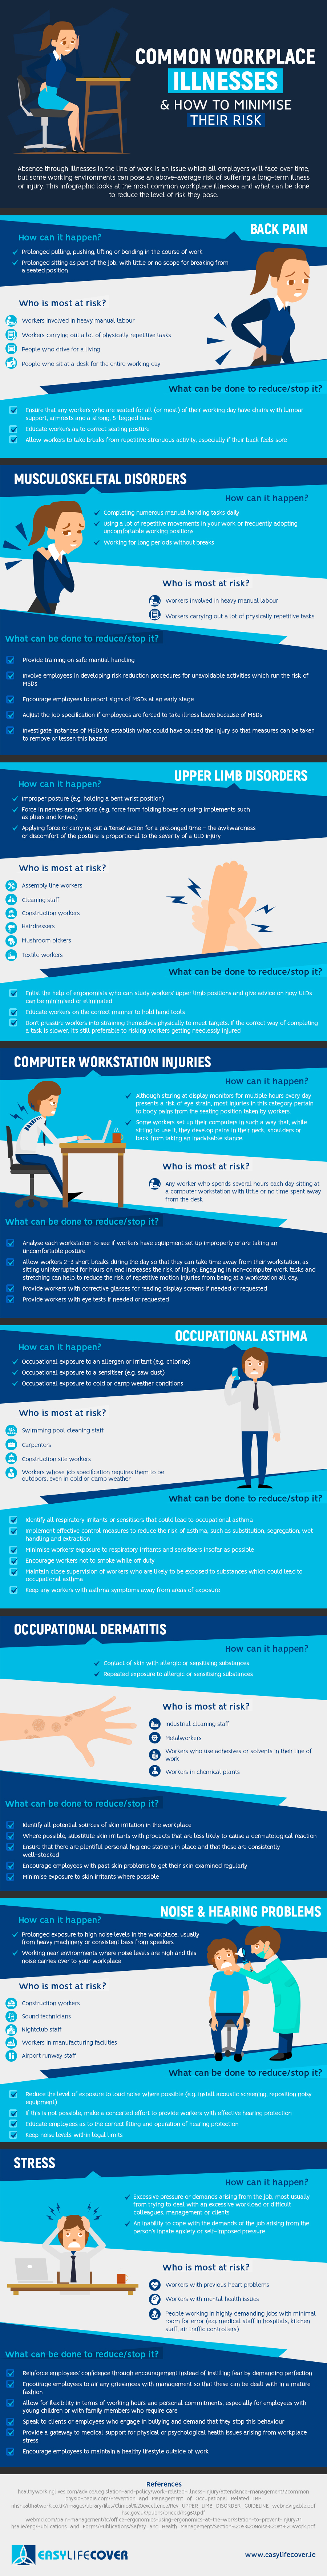 Common Workplace Illnesses & How to Minimise Their Risk (Infographic).jpg